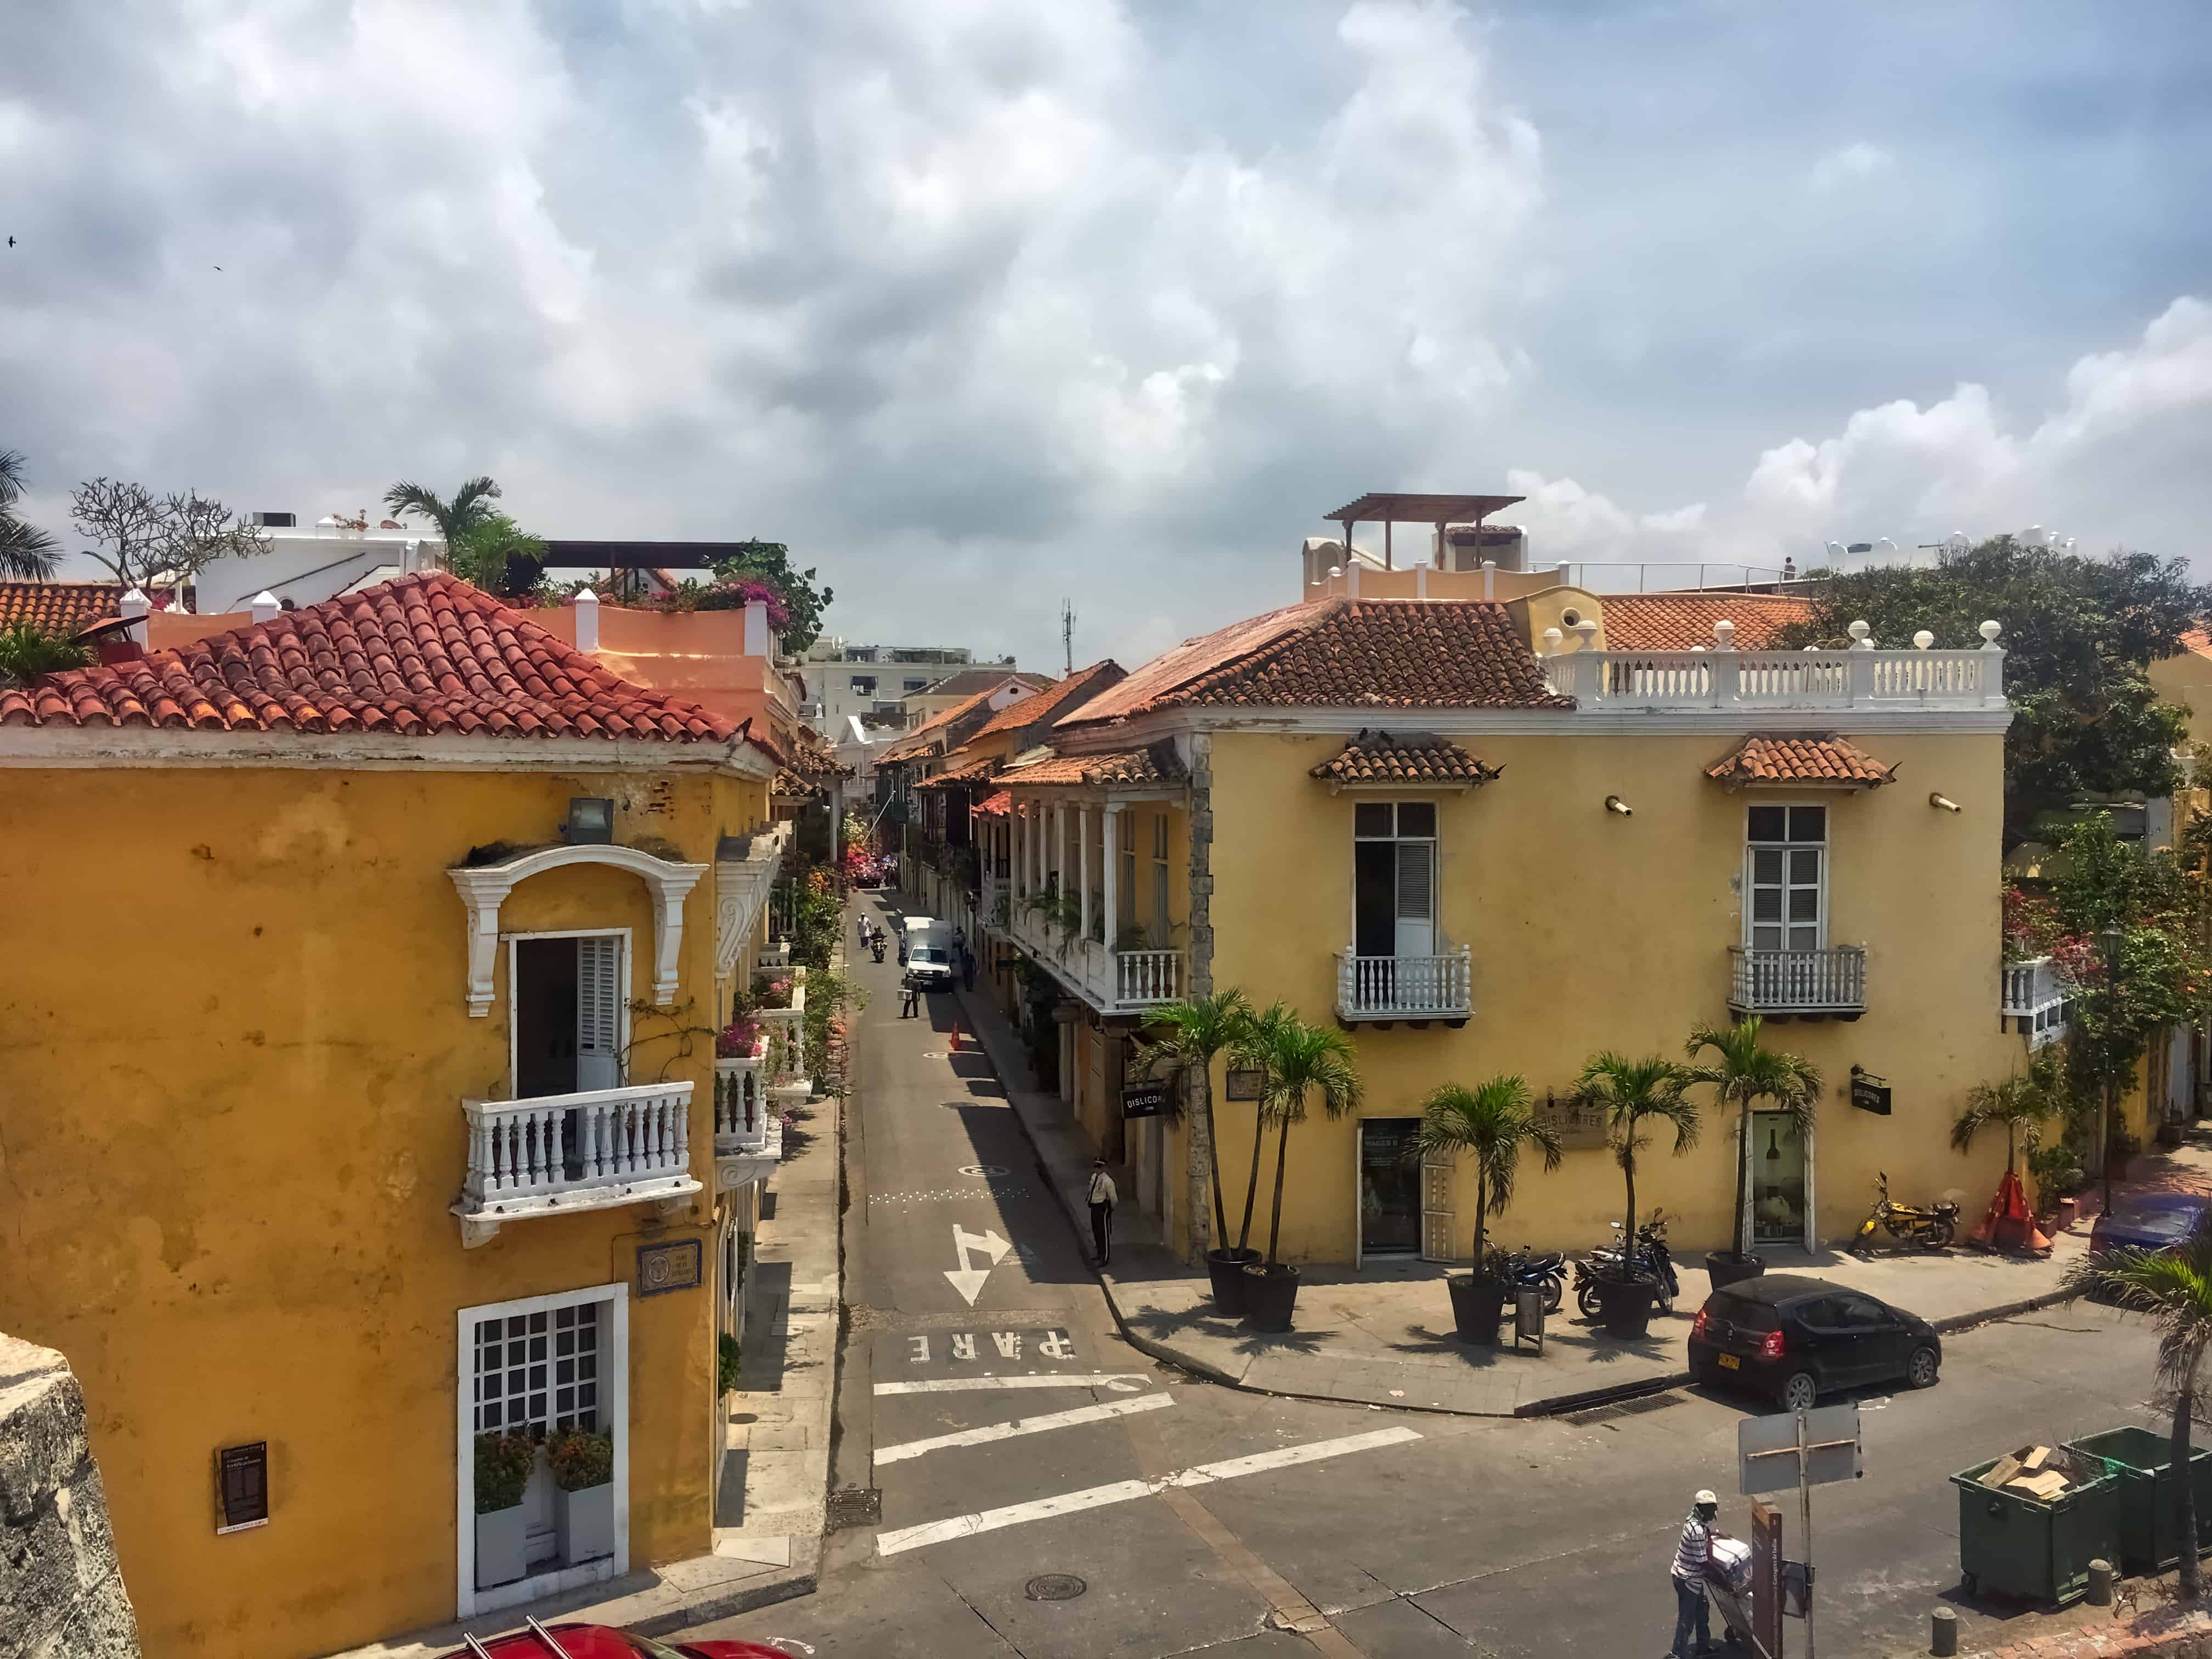 Looking out over Cartagena